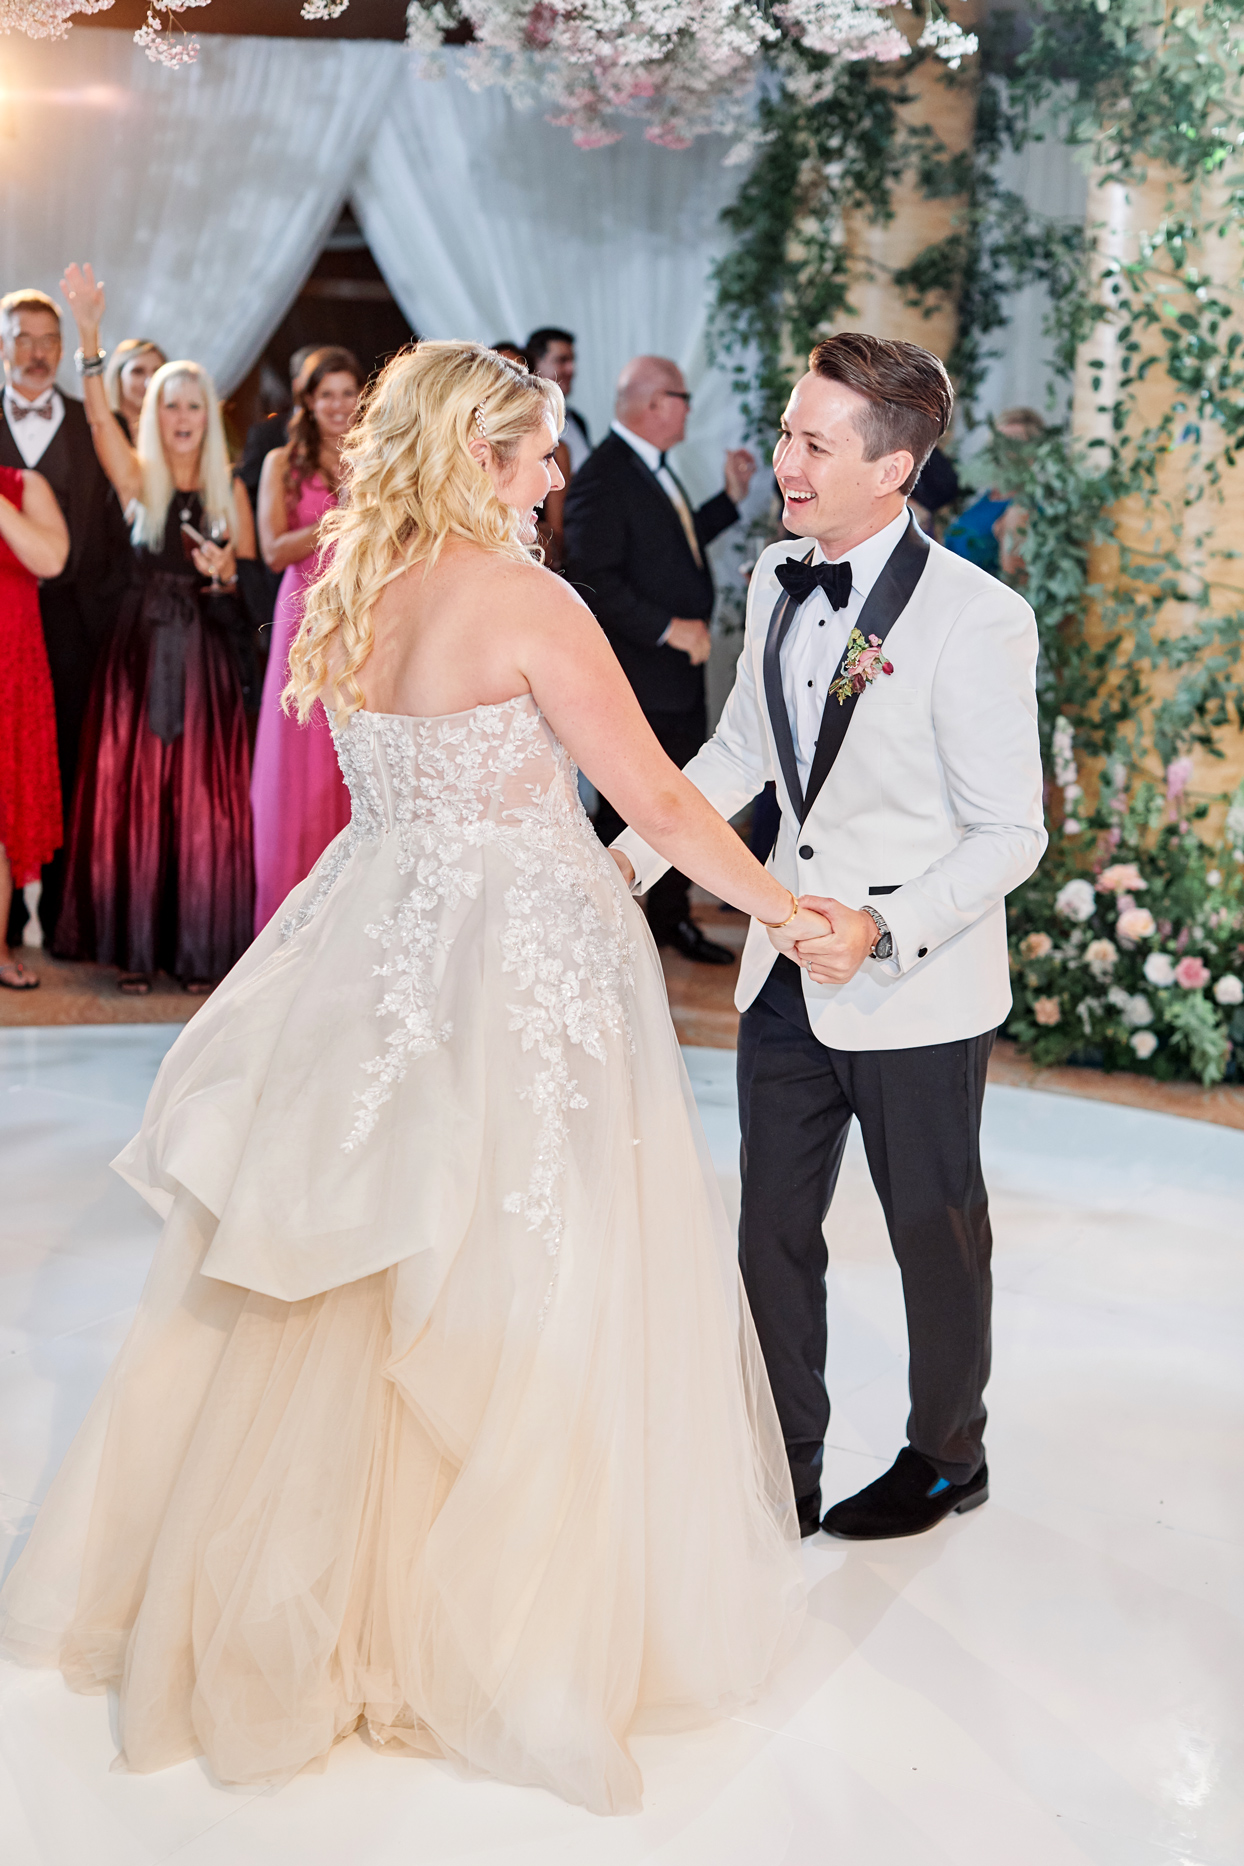 bride and groom smile holding hands during first dance on white dance floor